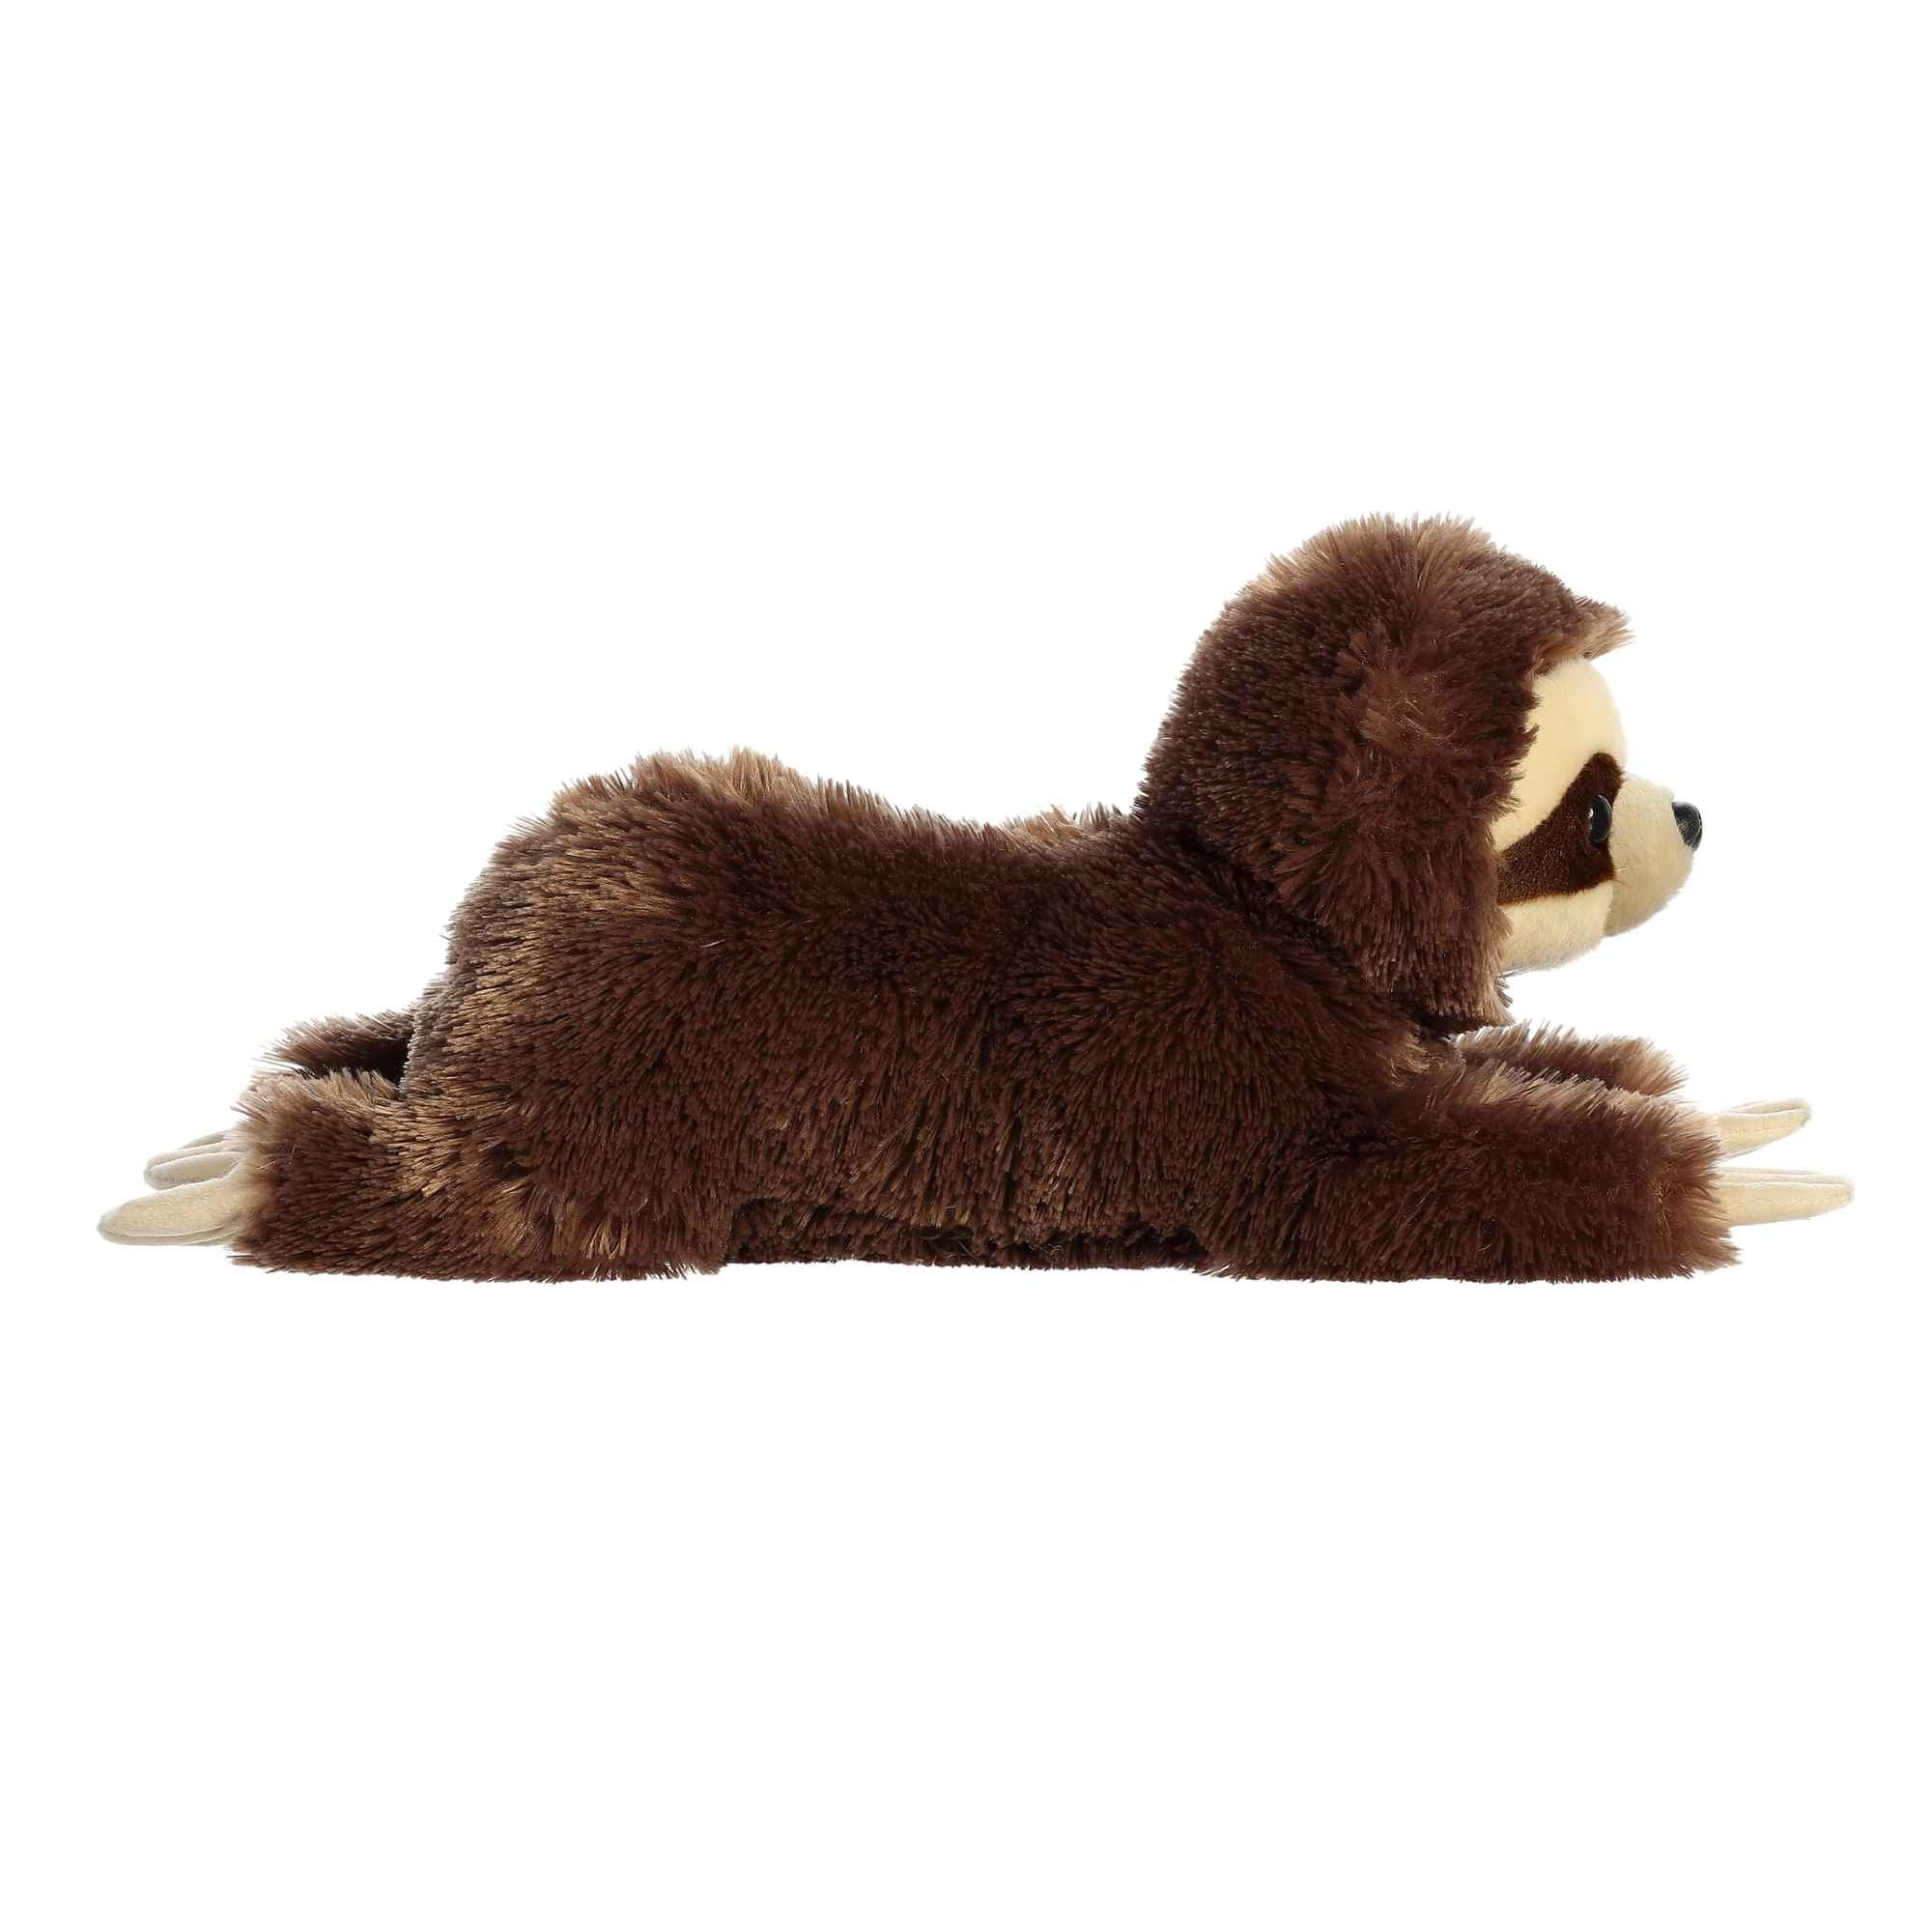 "Aurora - Grand Flopsie - 16.5"" Snoozy Sloth"